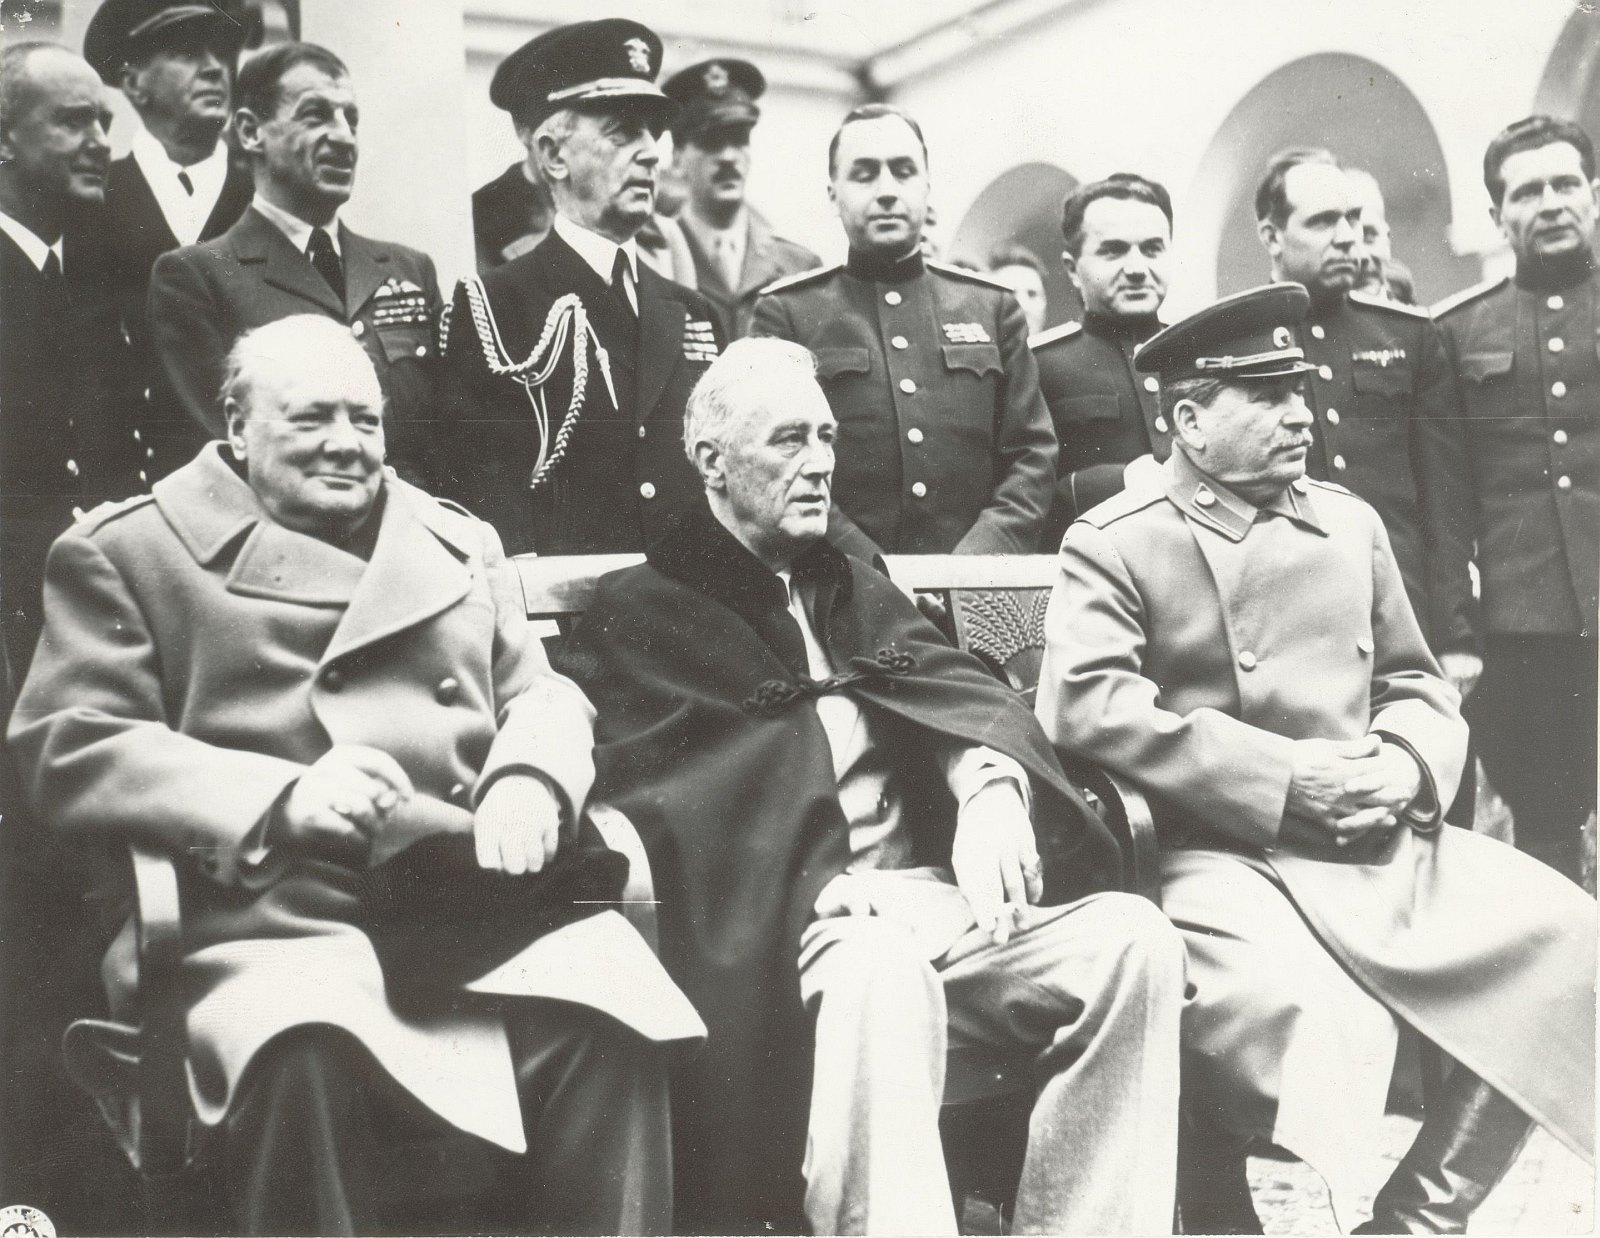 Russian Foreign Ministry releases collection of Top Secret Documents on 1945 Yalta Conference